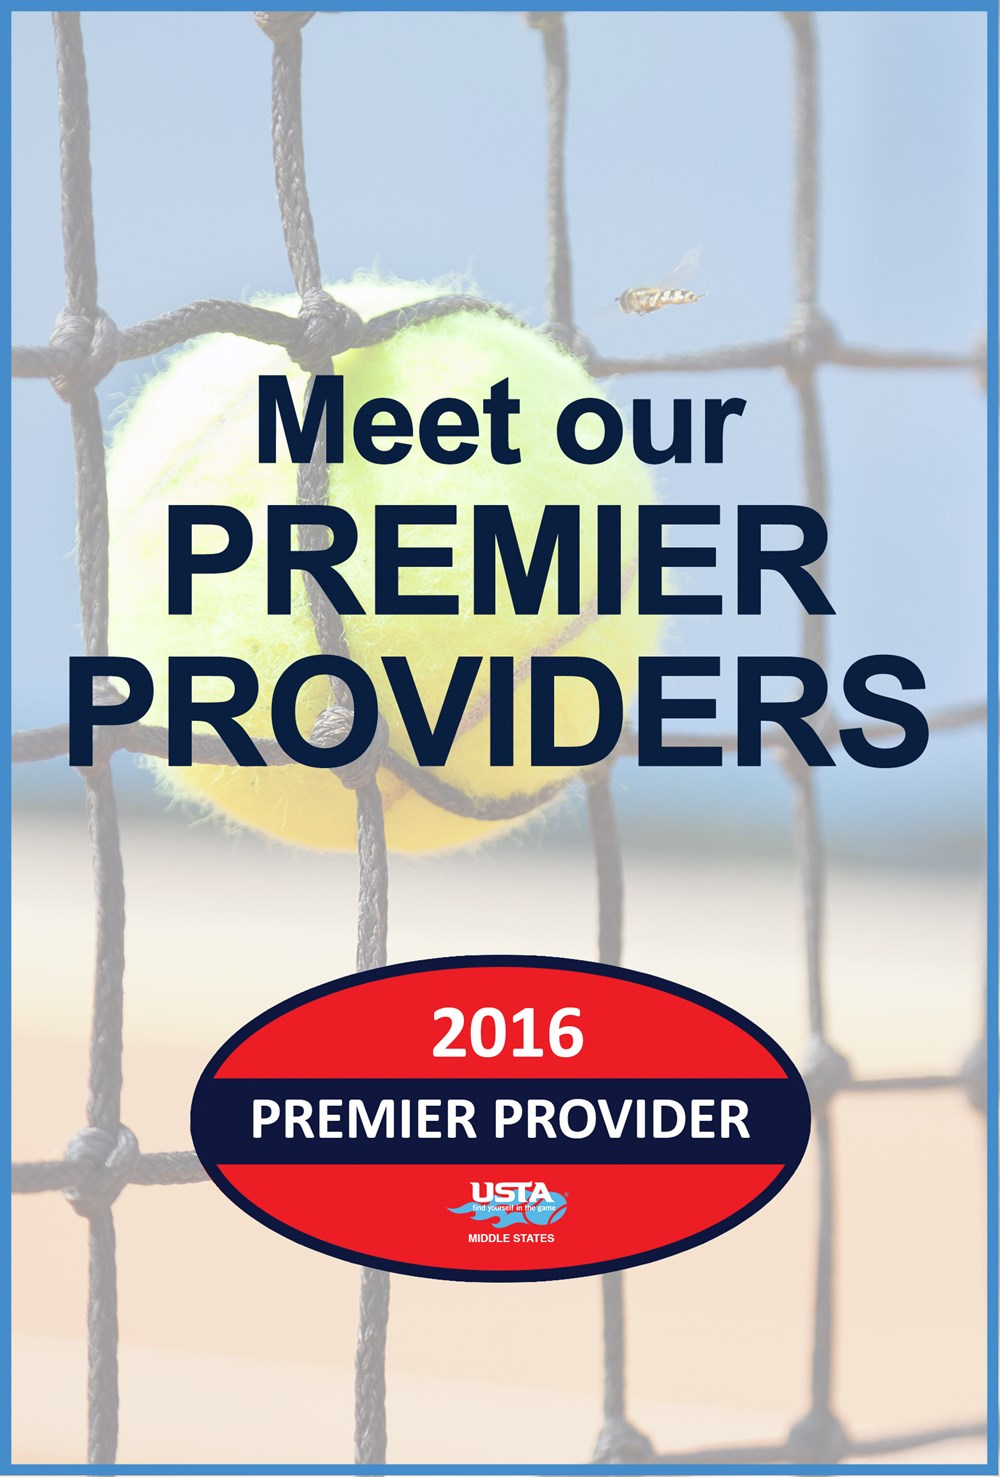 MeetPremierProviders